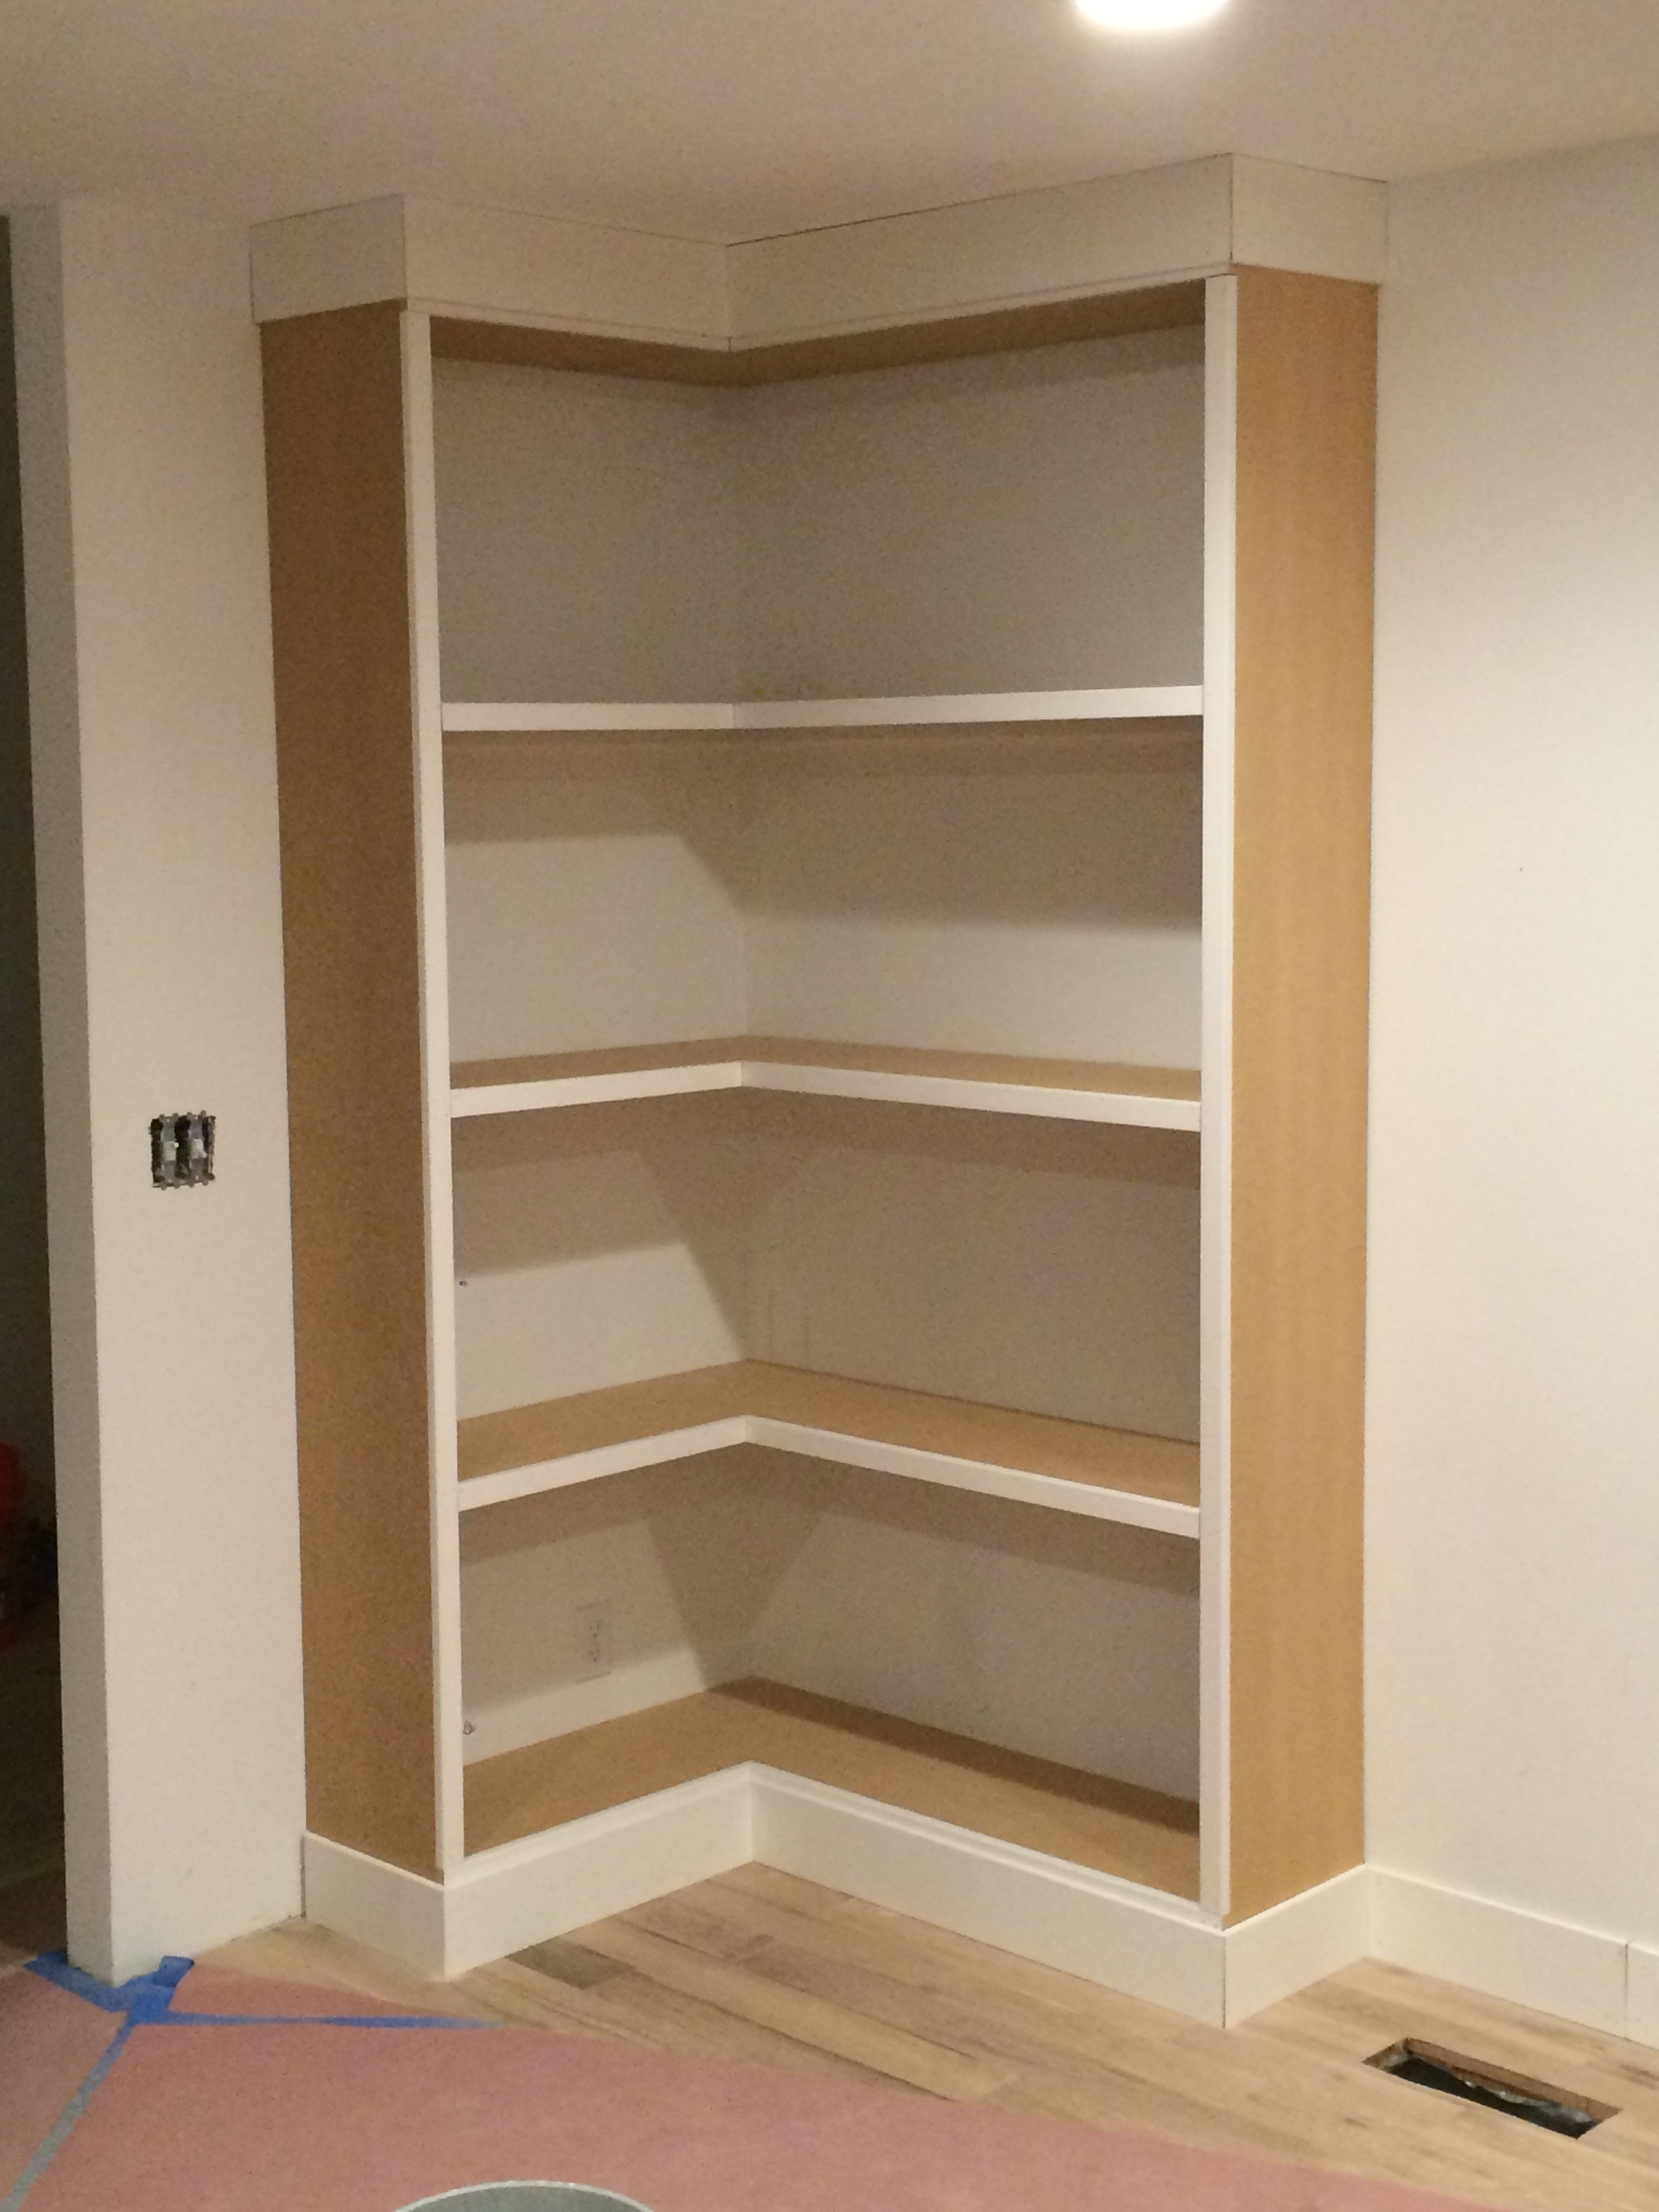 Preferred Homemade Bookcases Inside 33 Bookcases Diy, Diy Built In Bookshelves Maison De Pax (View 14 of 15)